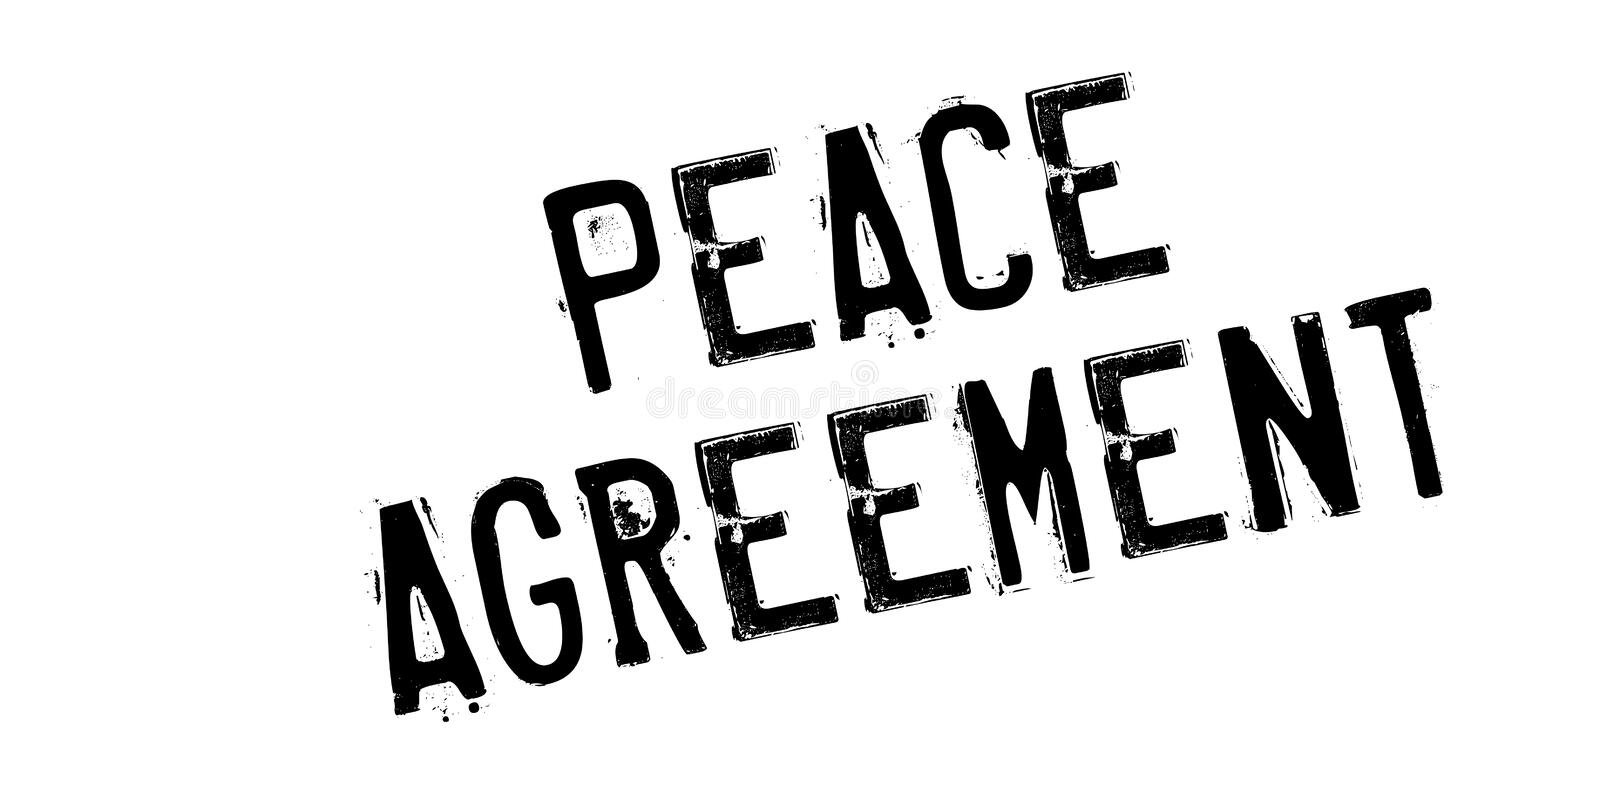 peace-agreement-rubber-stamp-grunge-design-dust-scratches-effects-can-be-easily-removed-clean-crisp-look-color-88028313.jpg